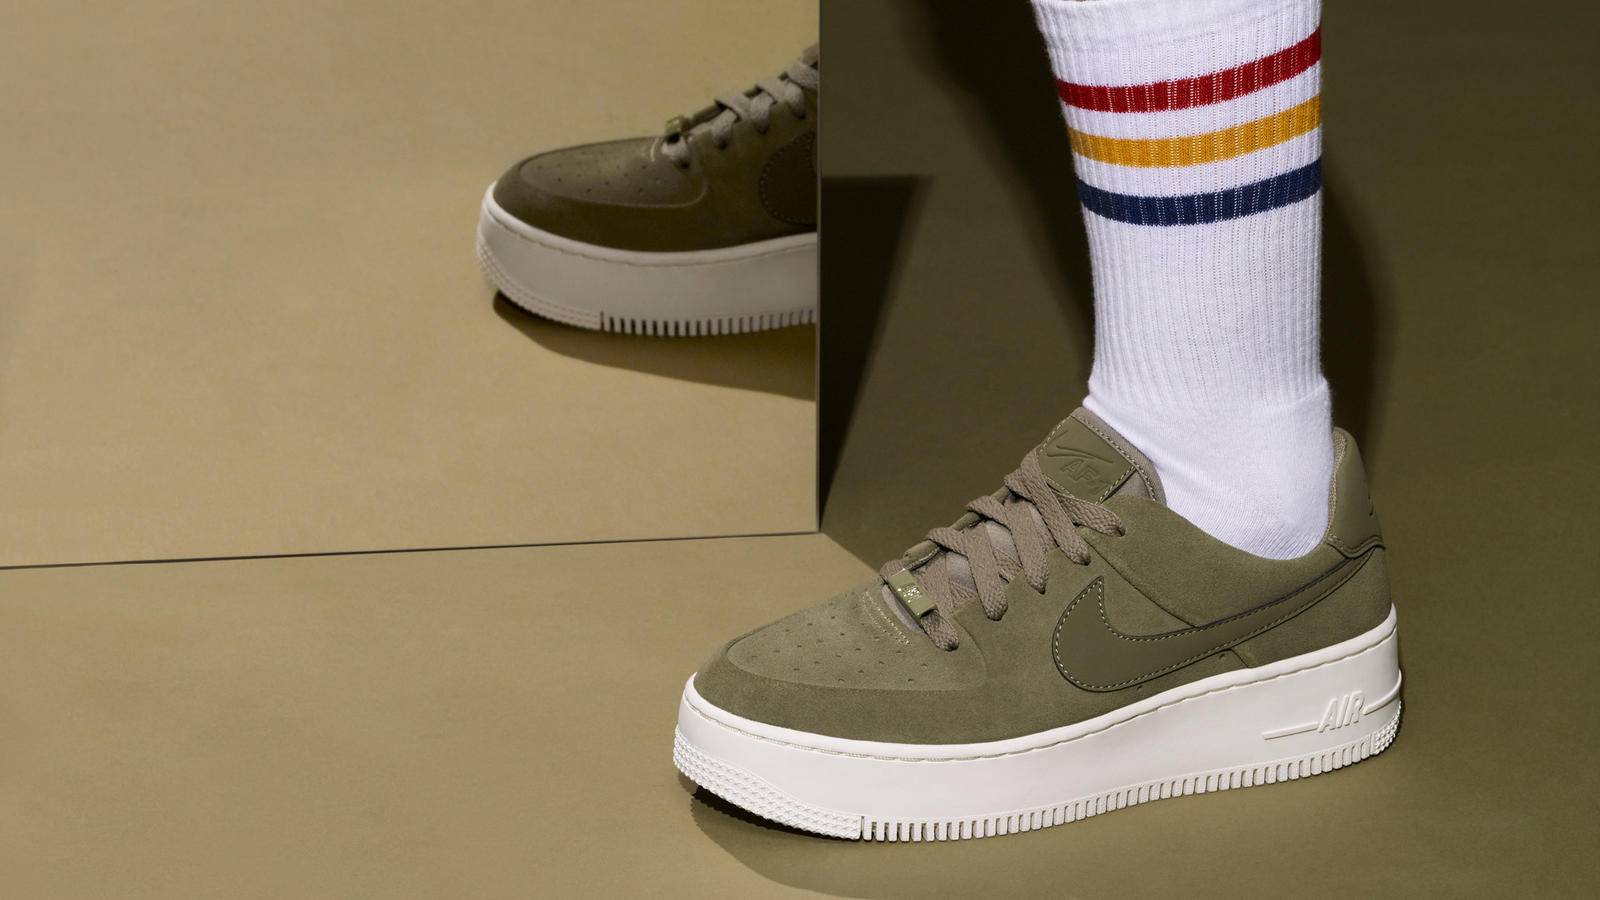 71bafadda40 New Styles Honor the Communities that Made Air Force 1 An Icon ...